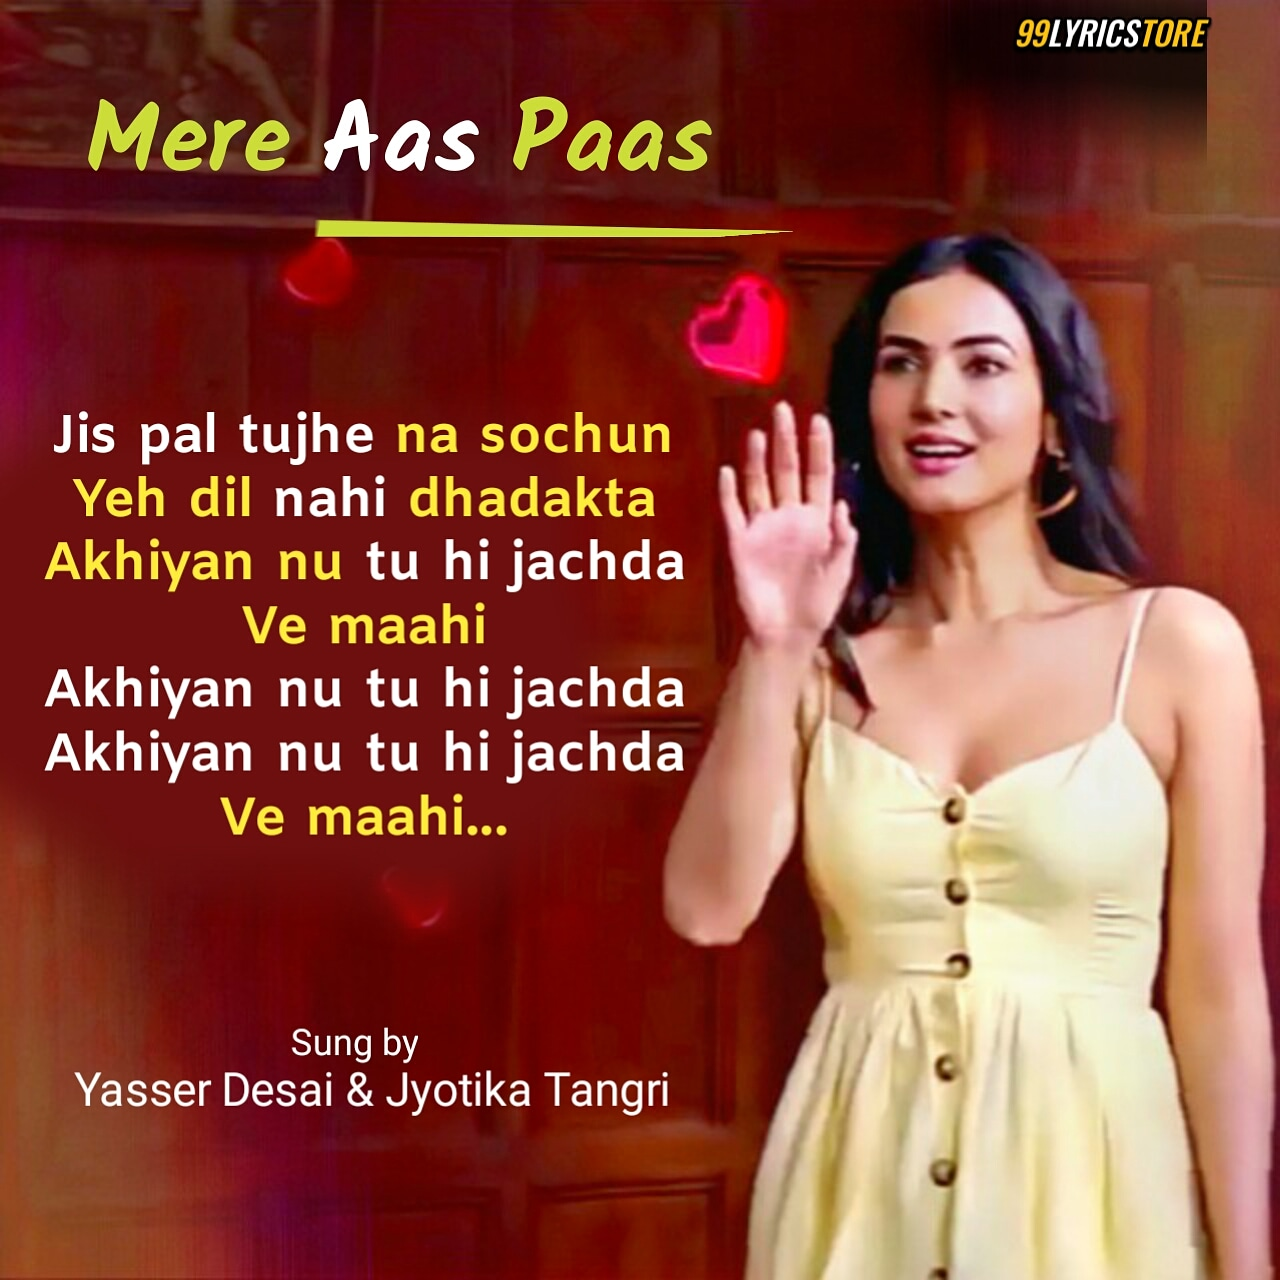 Mere Aas Paas Love Hindi Song sung by 'Yasser Desai'and'Jyotika Tangri'. Song Featuring 'Sonal Chauhan'